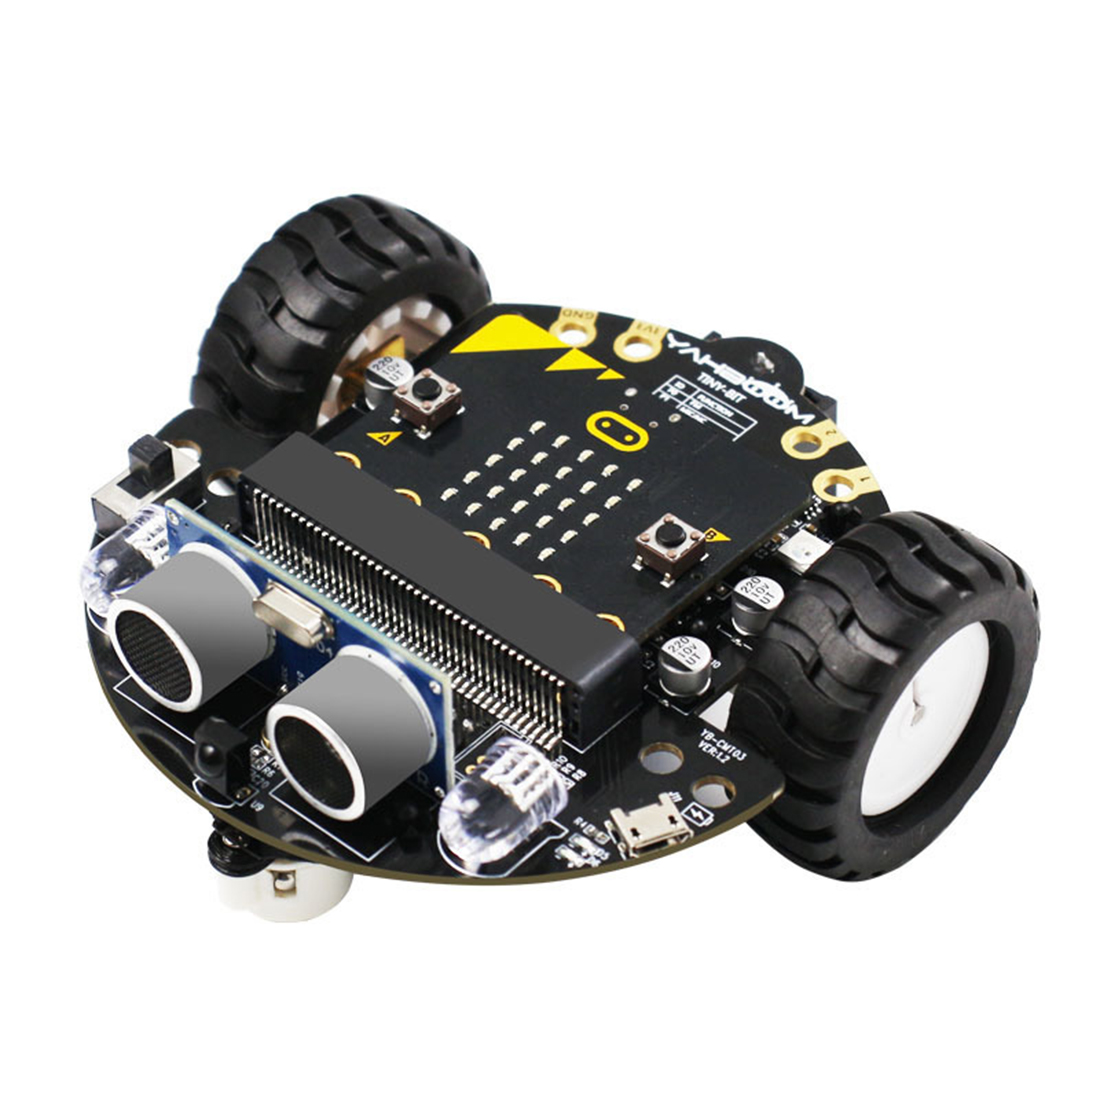 DIY Obstacle Avoidance Smart Programmable Robot Car Educational Learning Kit without Mainboard for Micro:bit Gift for Children 2